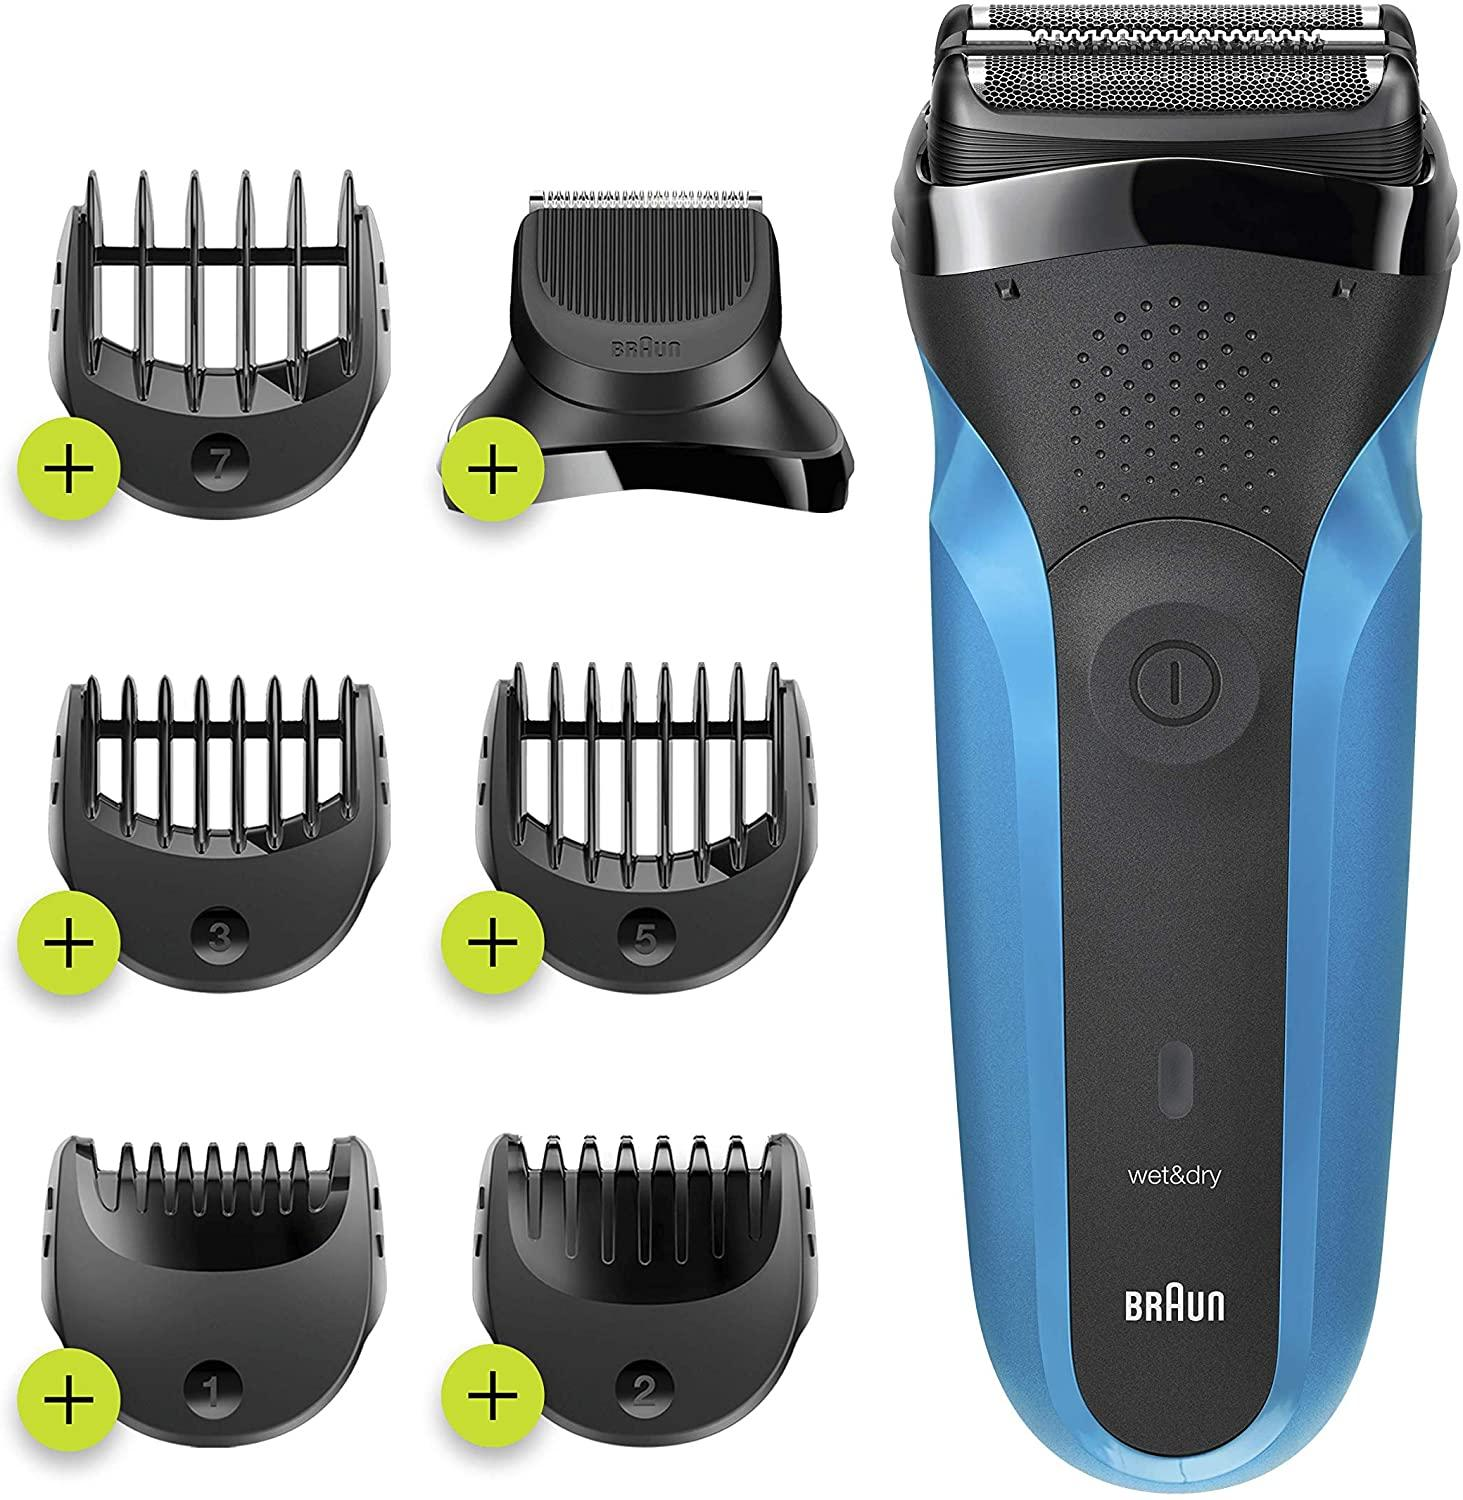 Braun Shaver 310BT,Series 3 Shave and Style Rechargeable Wet and Dry Electric Shaver, Blue/Black enlarge